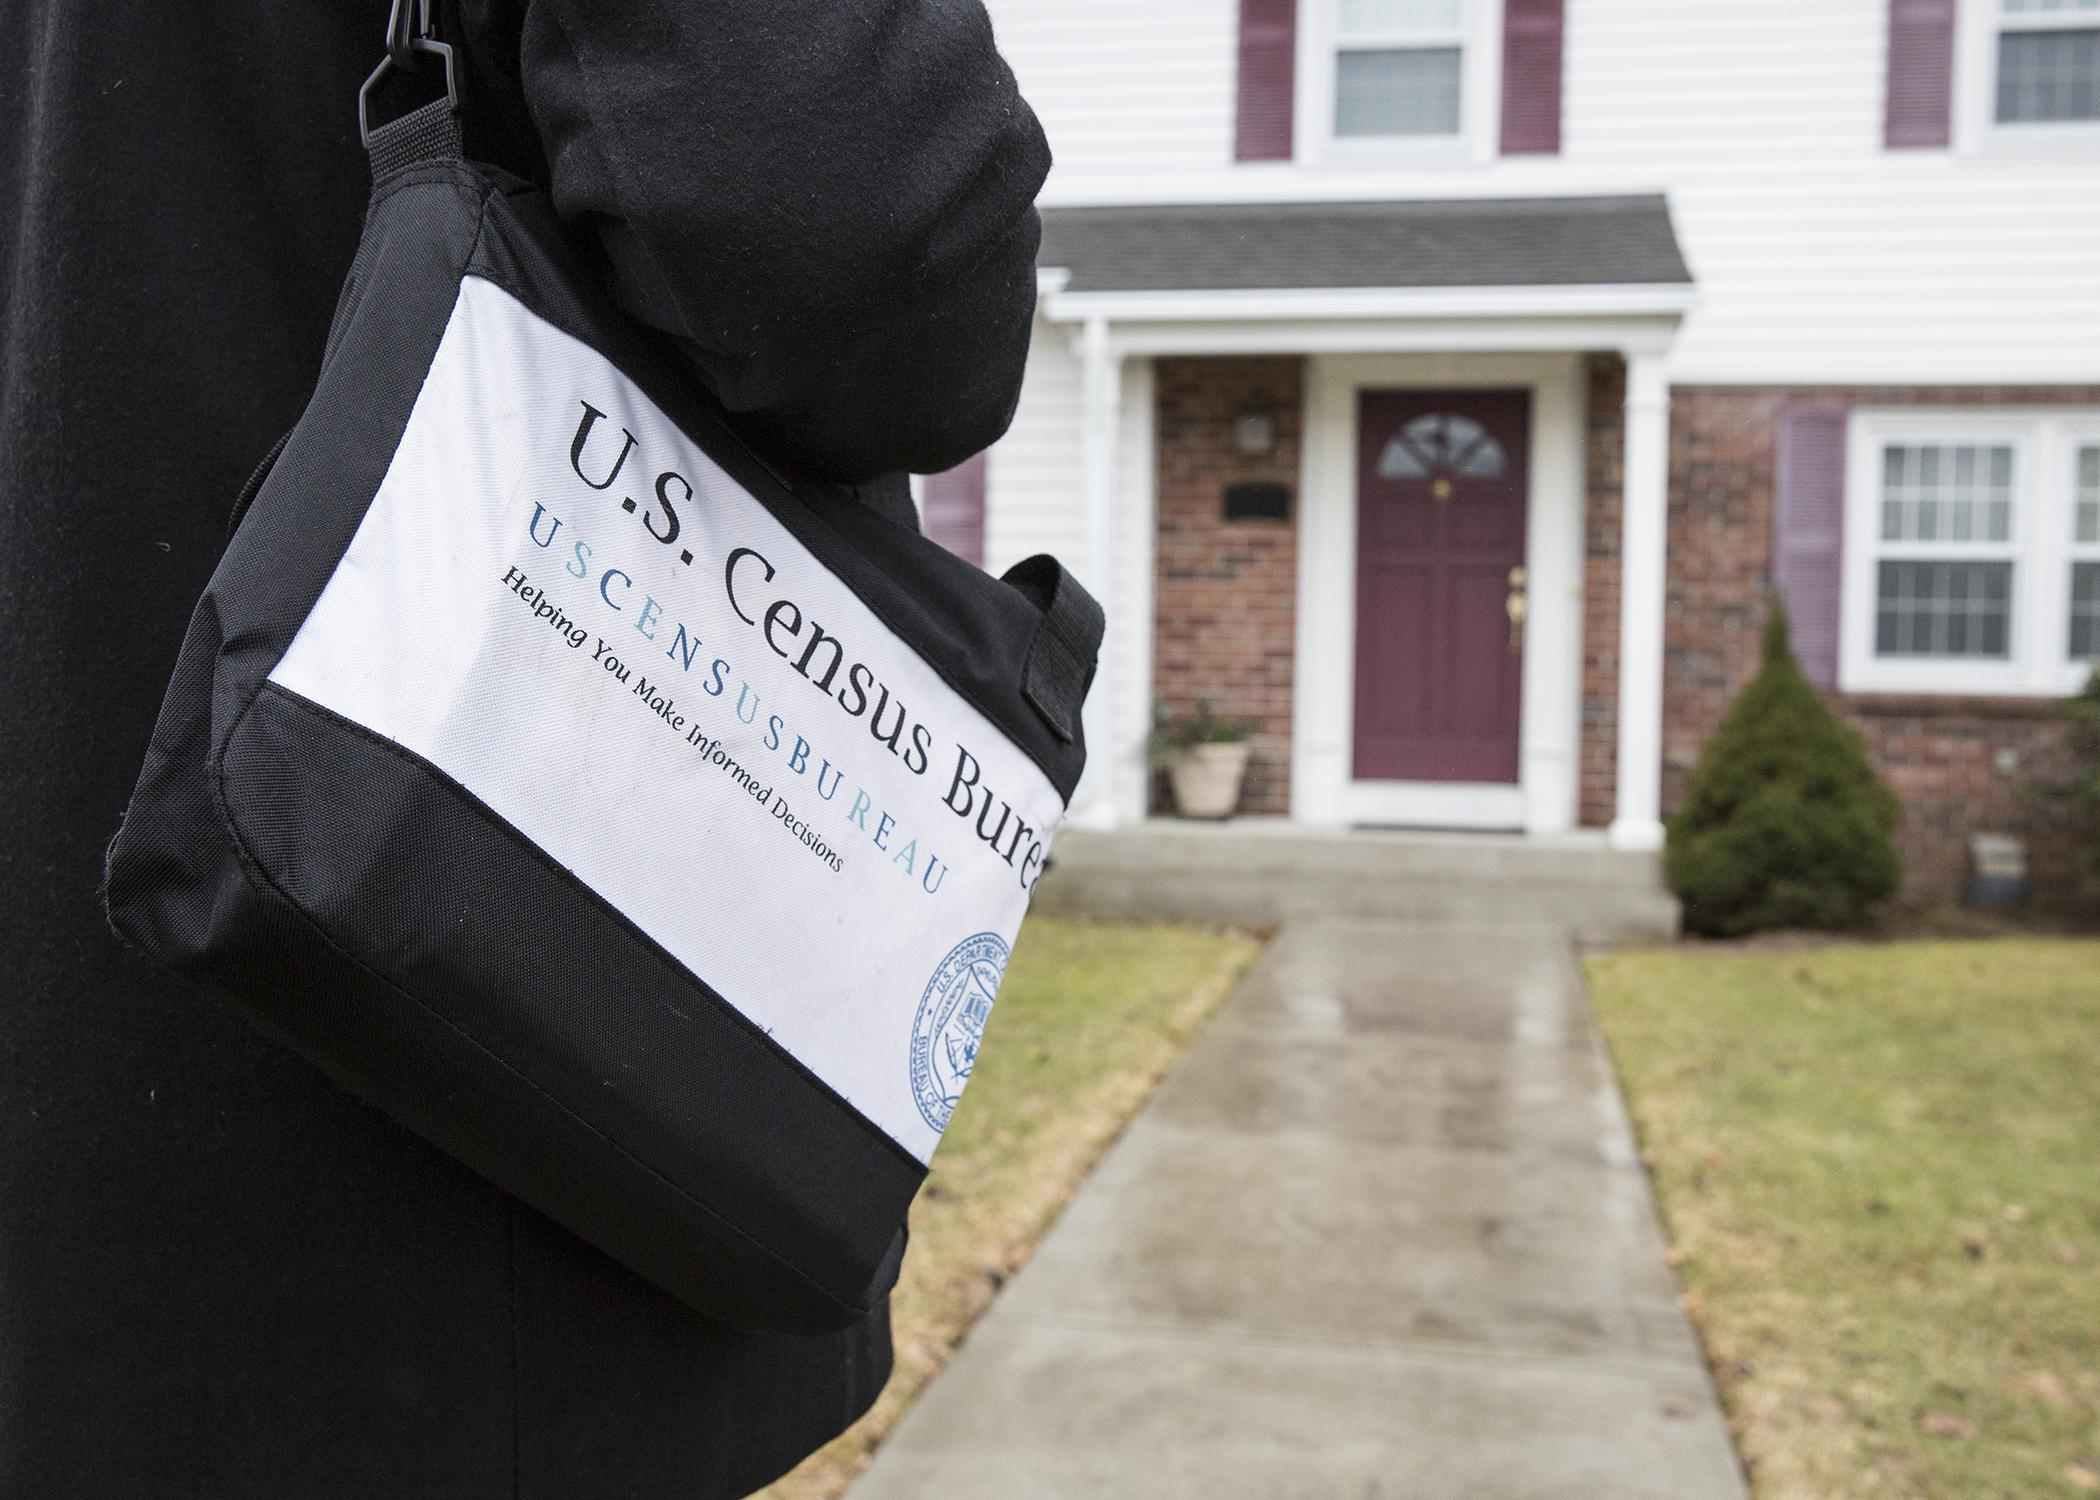 A person carrying a black bag marked with census information approaches the front door of a house.